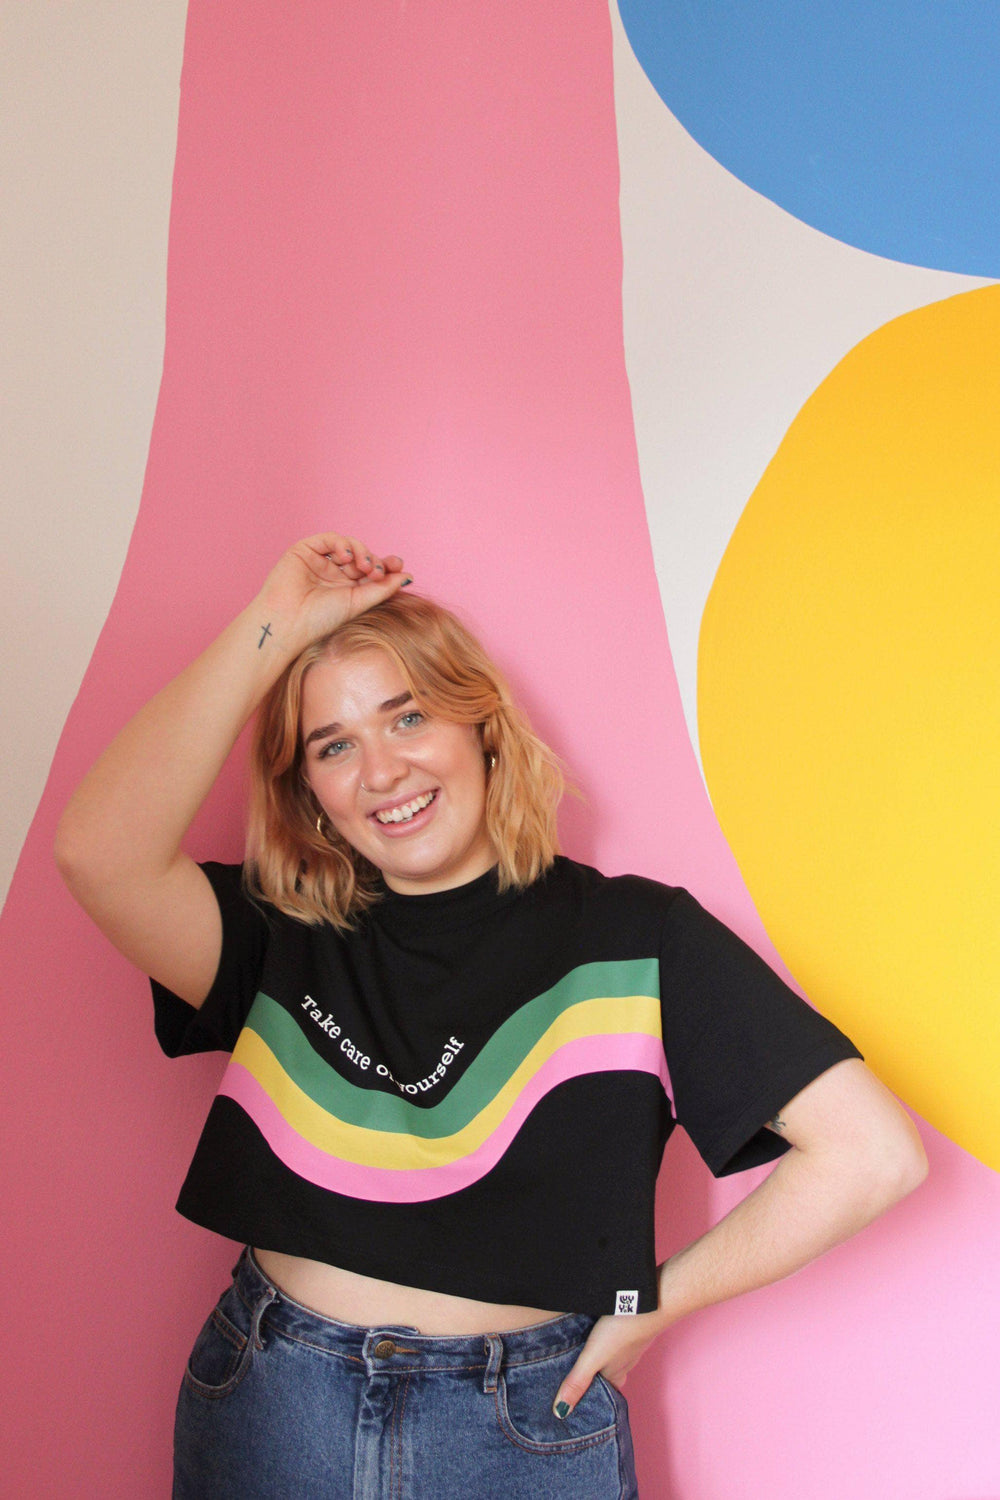 Lucy & Yak TOP Nola Boxy Cut Tee in Black with Take Care Wave Print